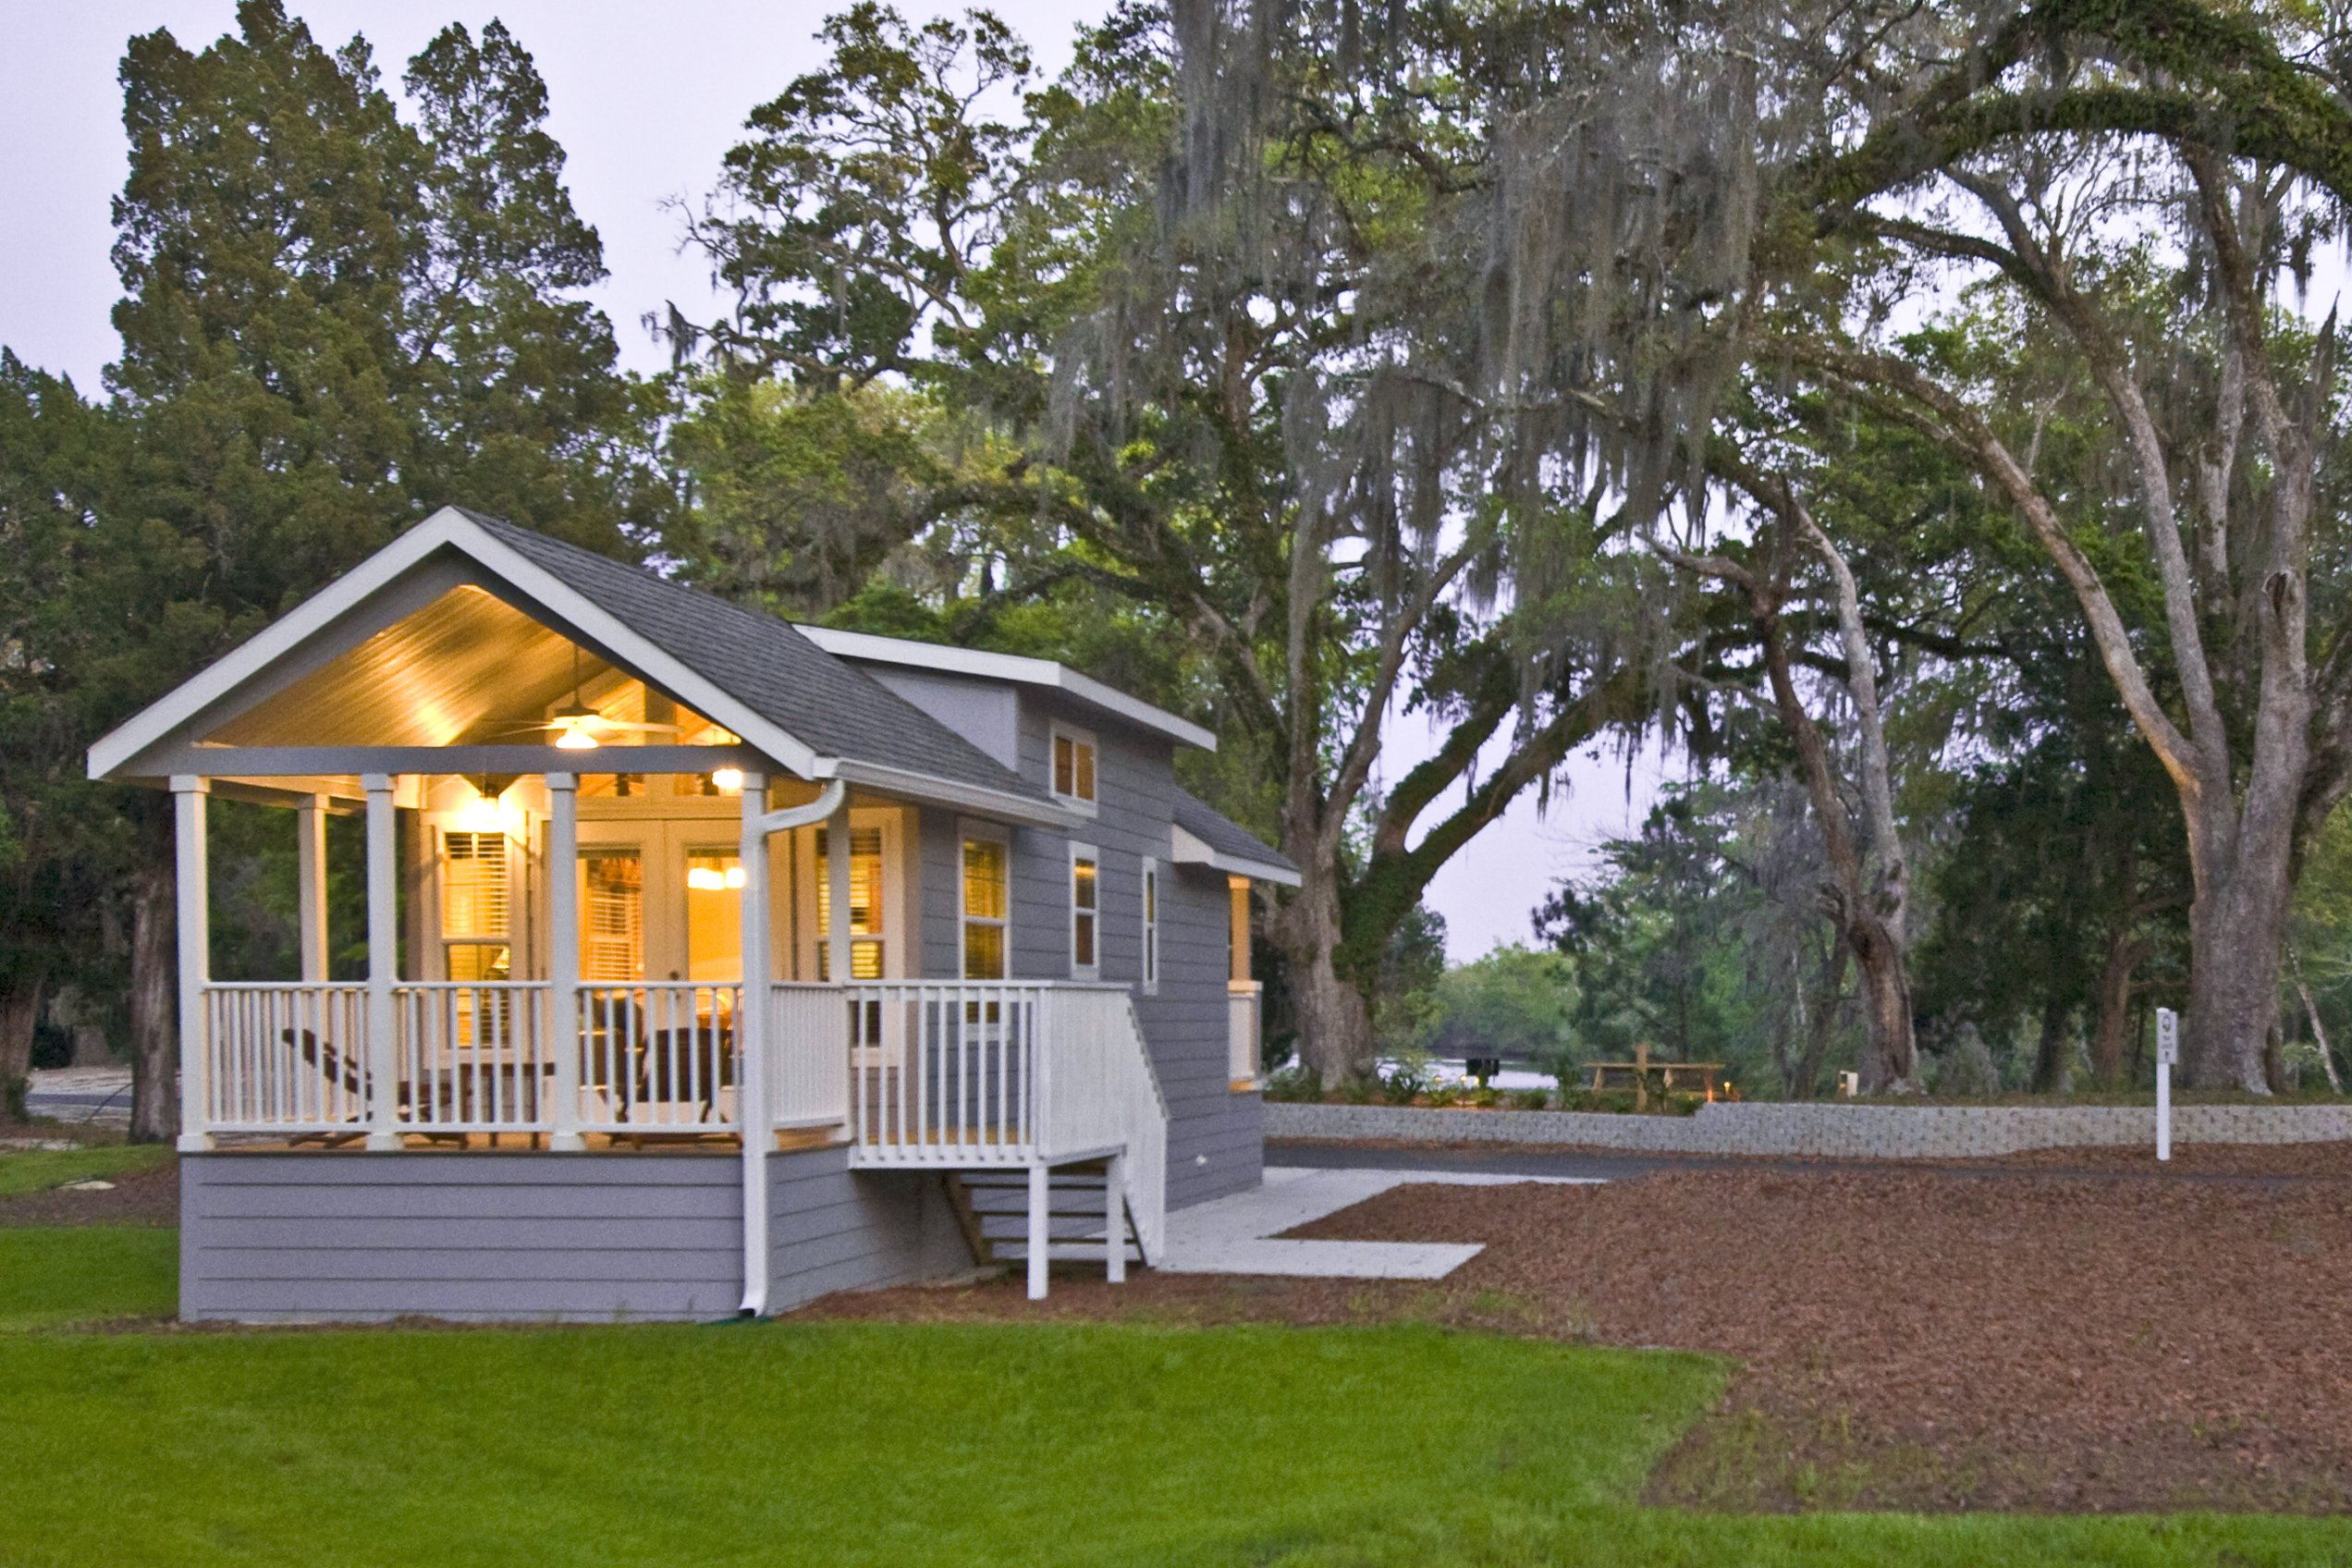 Tiny_Home_with_porch-1.jpg